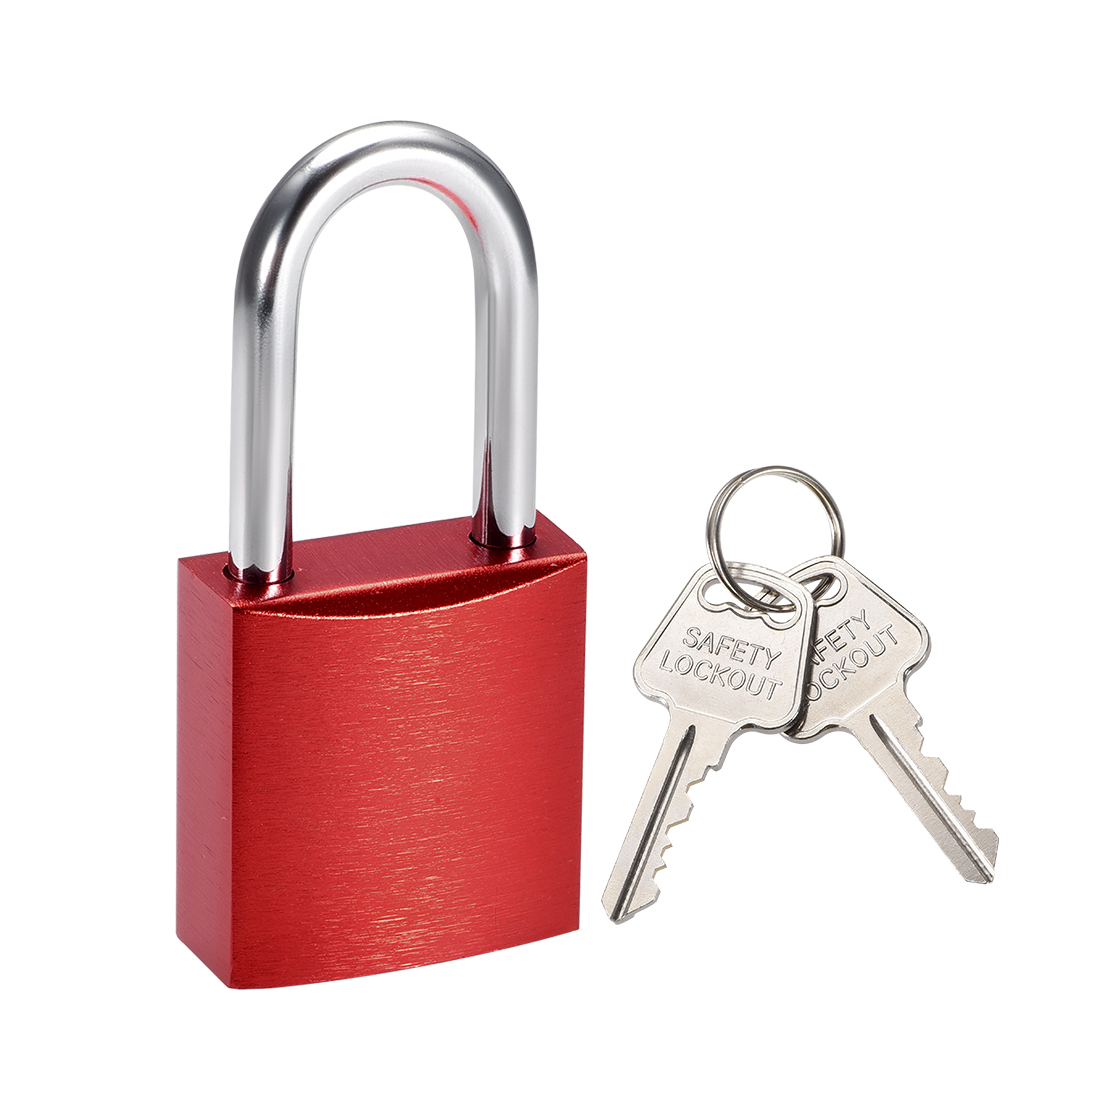 1-1/2 Inch Shackle Key Different Safety Padlock Red